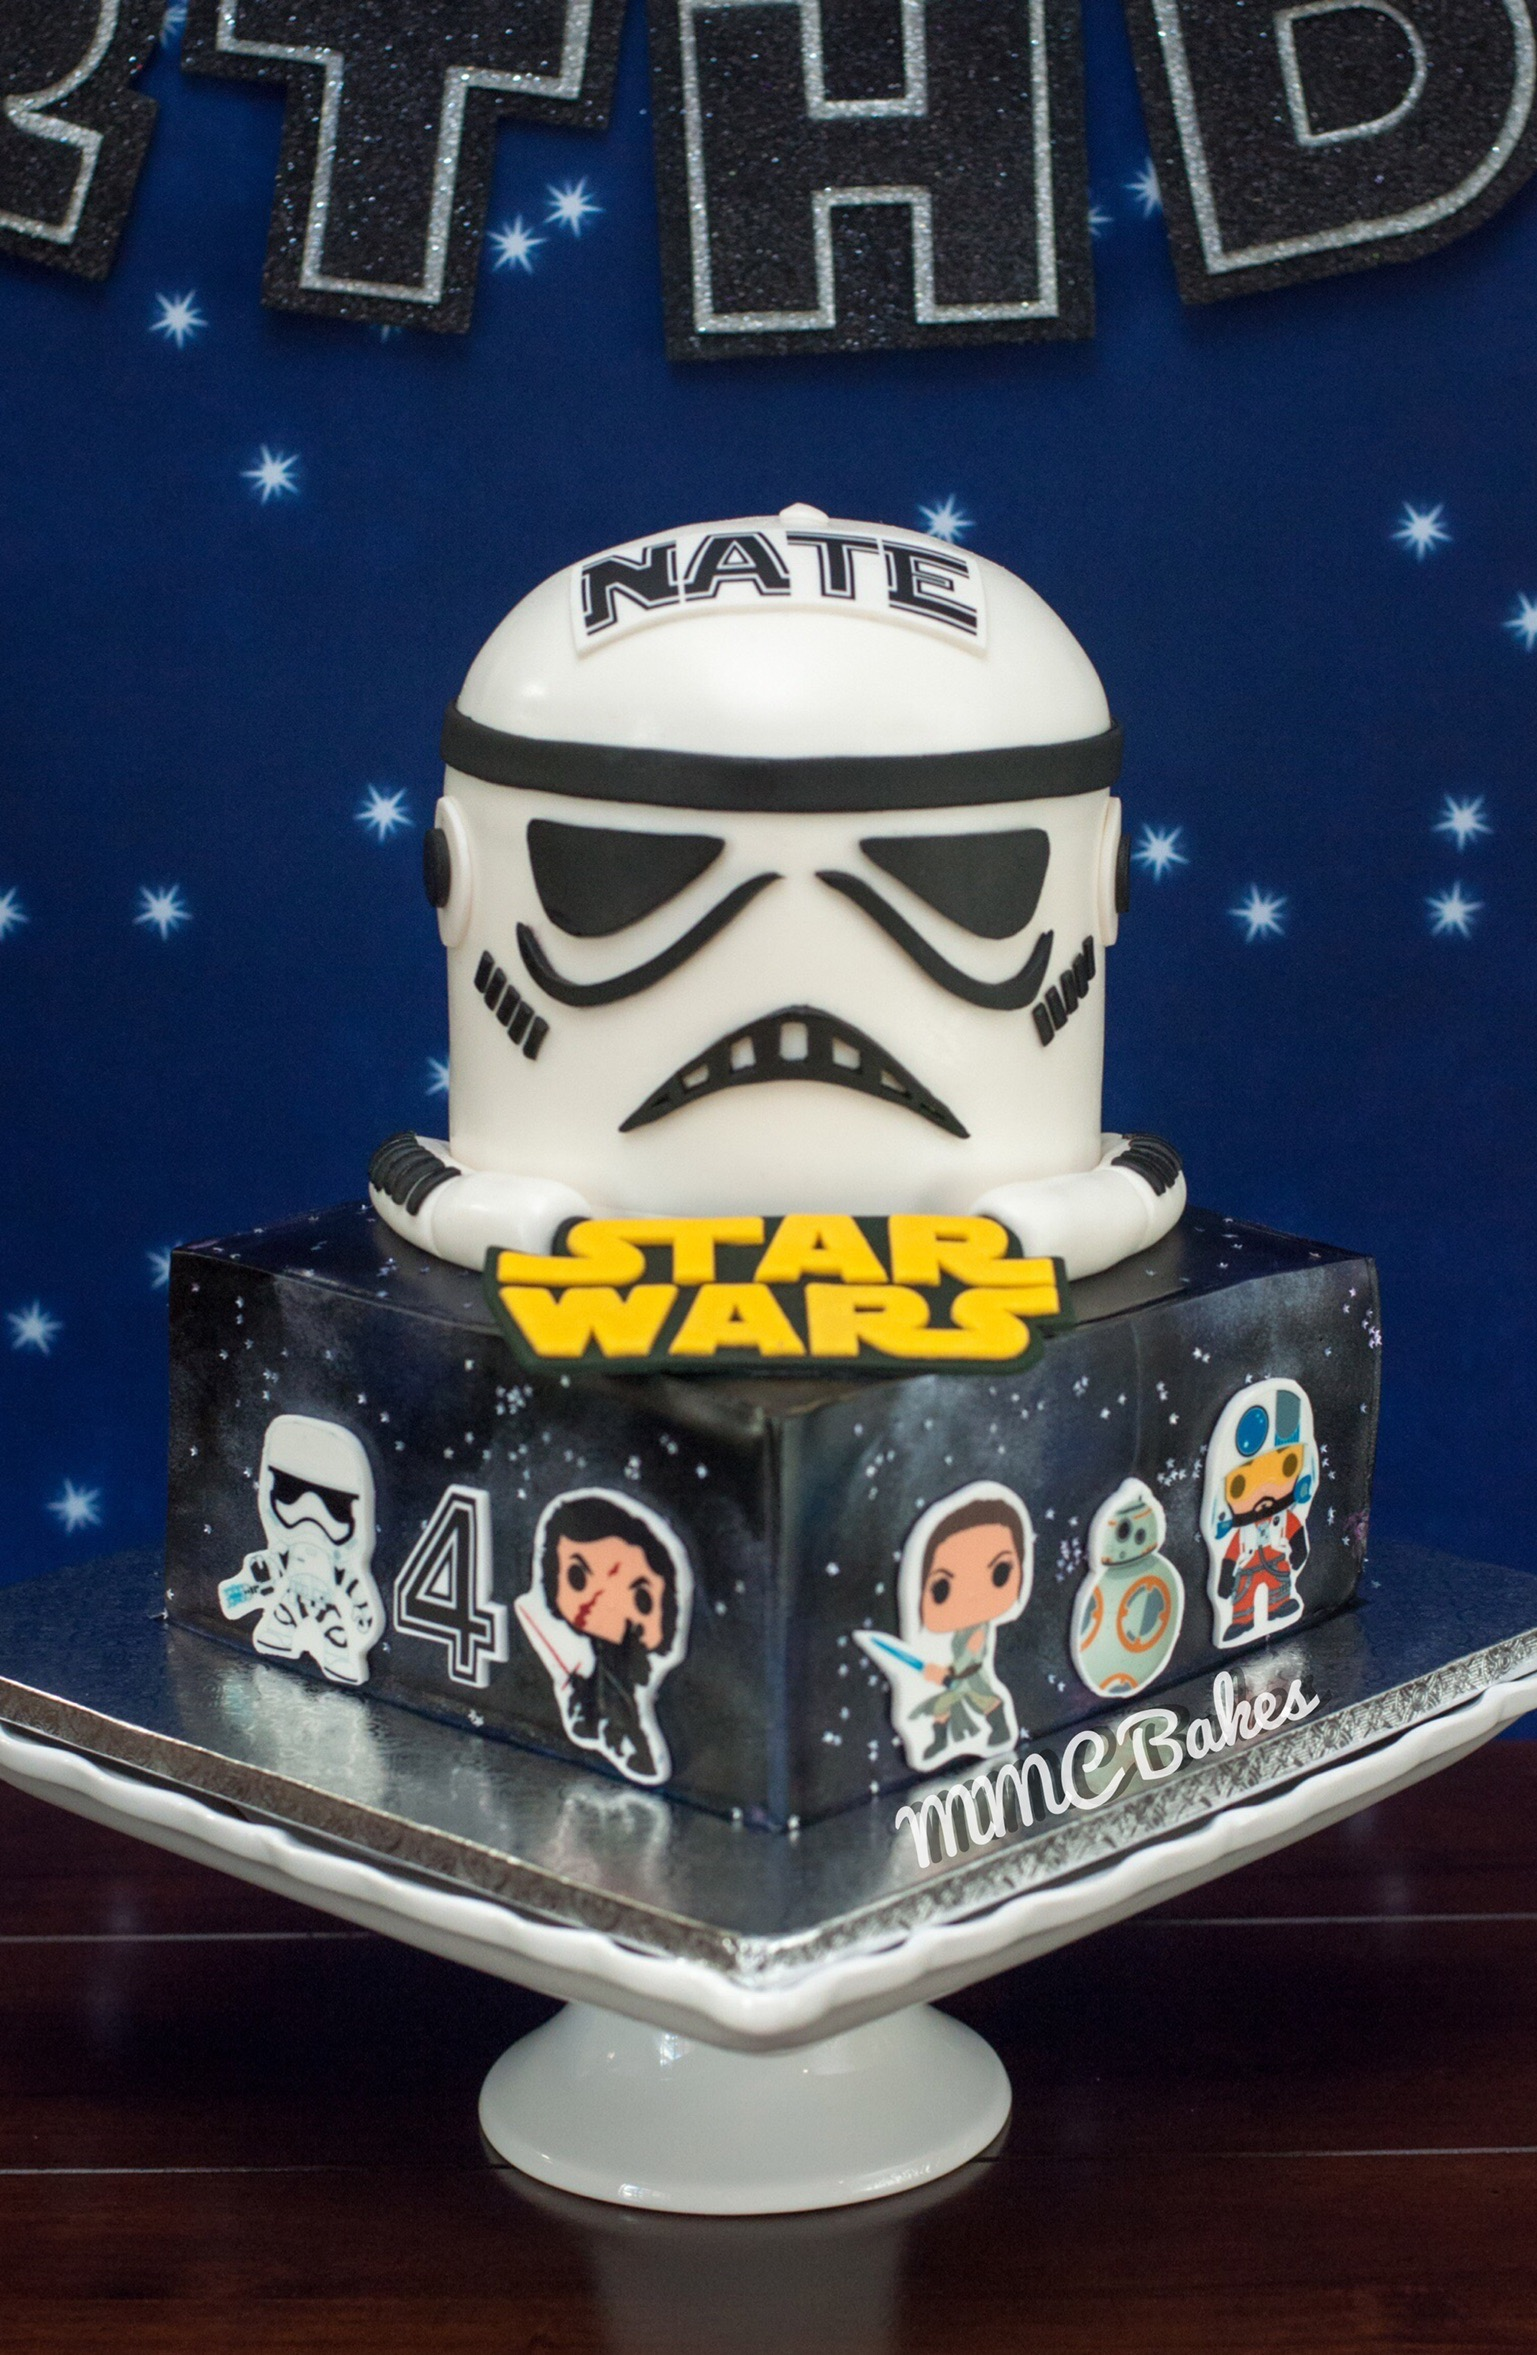 star wars cake, stormtrooper cake, fondant cake, birthday, the force awakens, star wars party, mmc bakes, custom cakes, san diego, chula vista